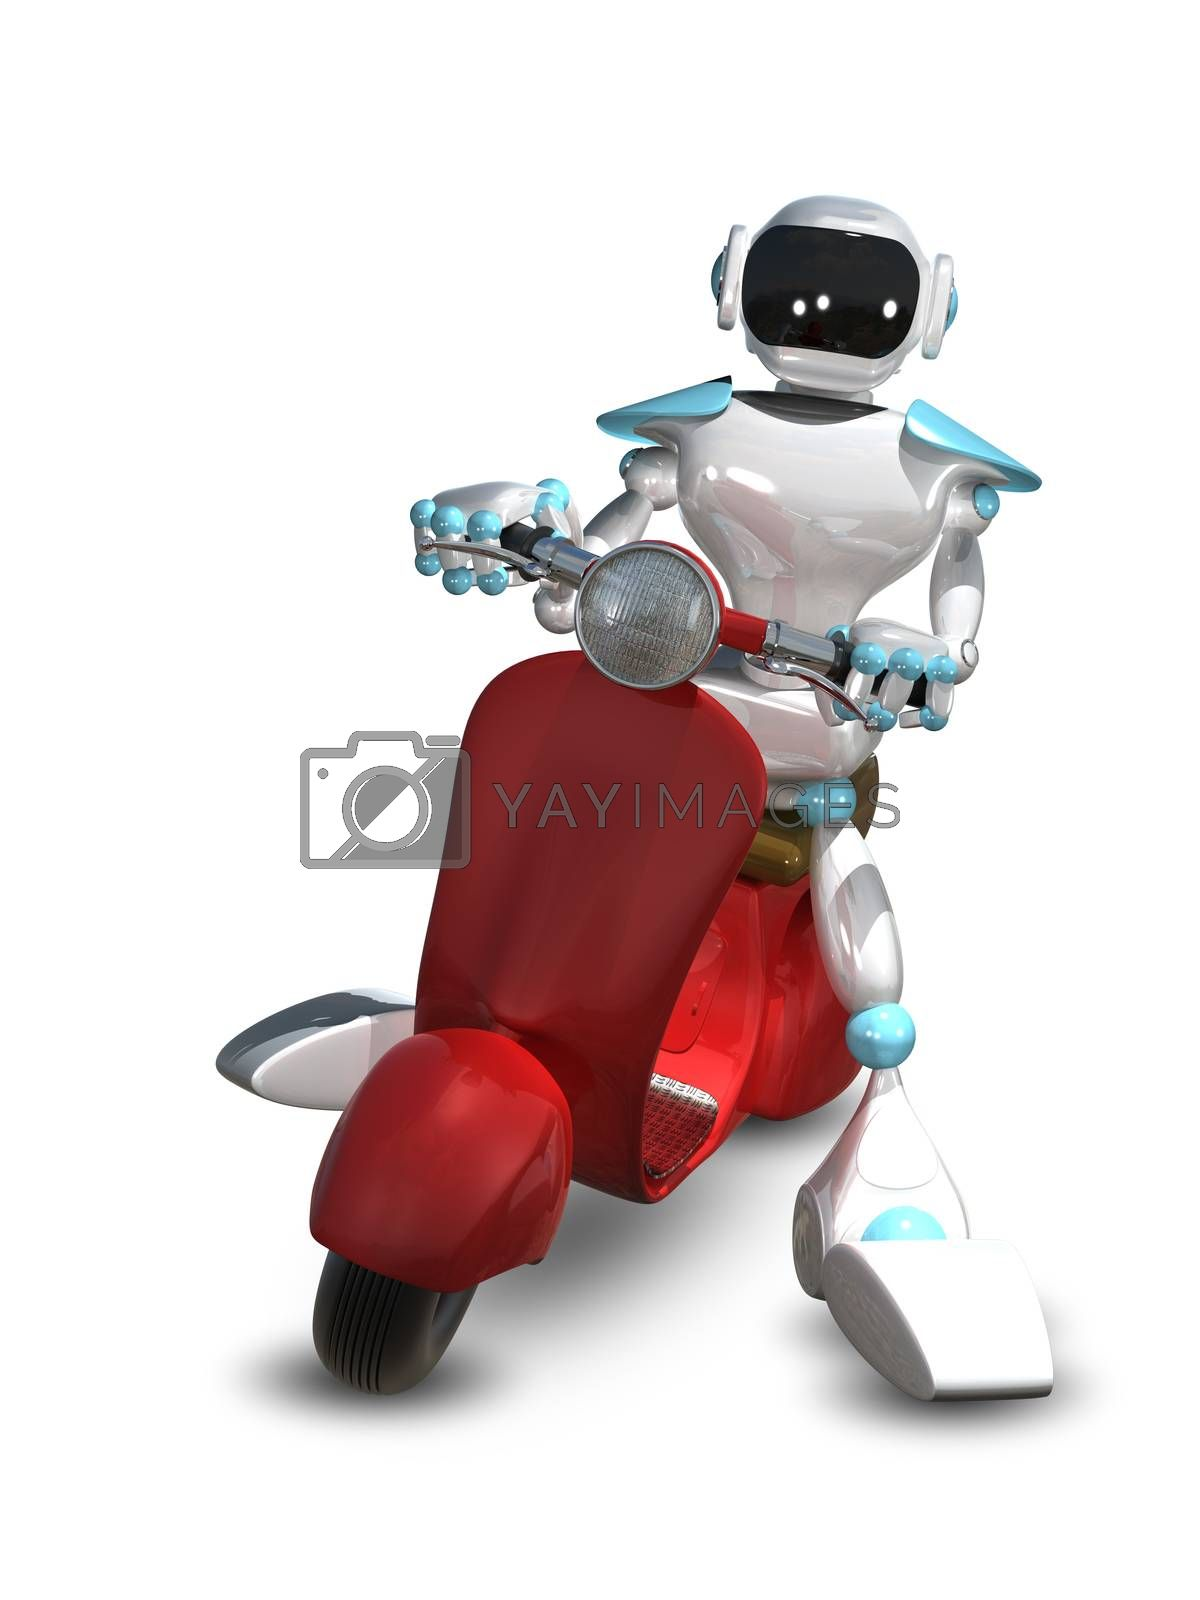 3D Illustration of a Robot on a Motor Scooter by brux